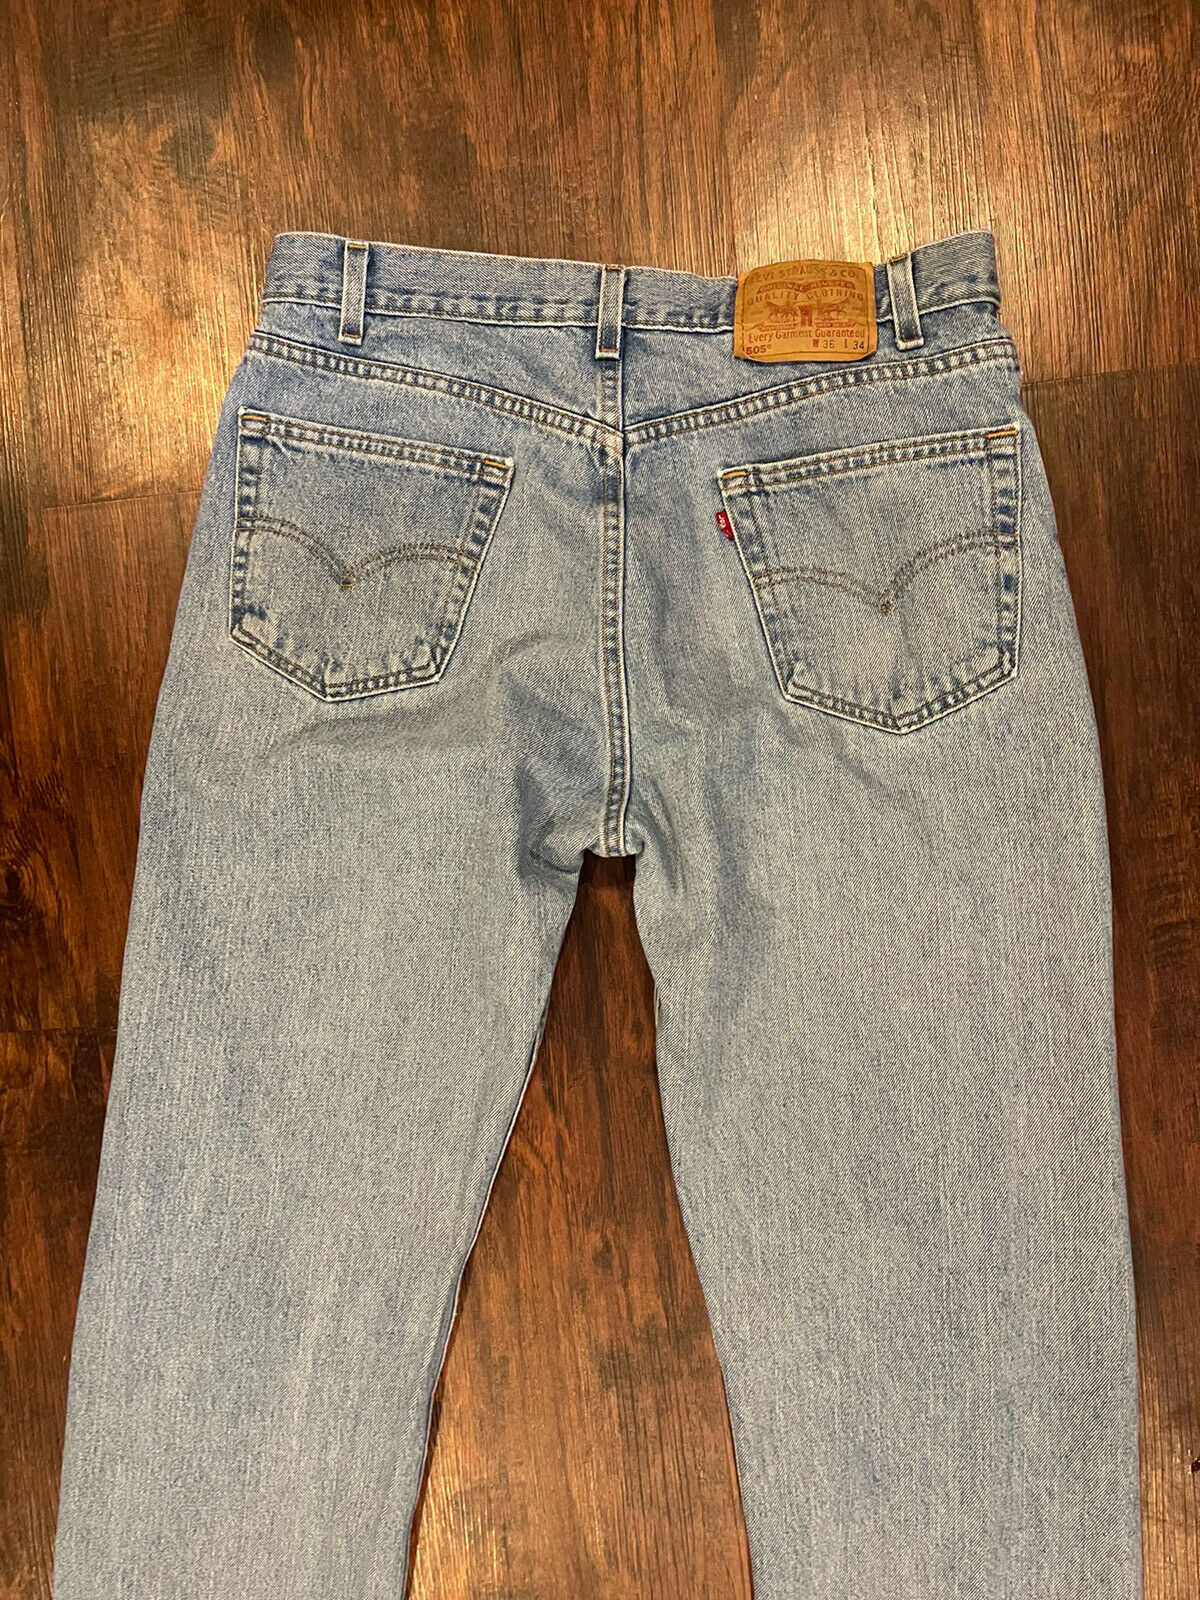 vintage levis 505 made in usa 36x34 - image 3